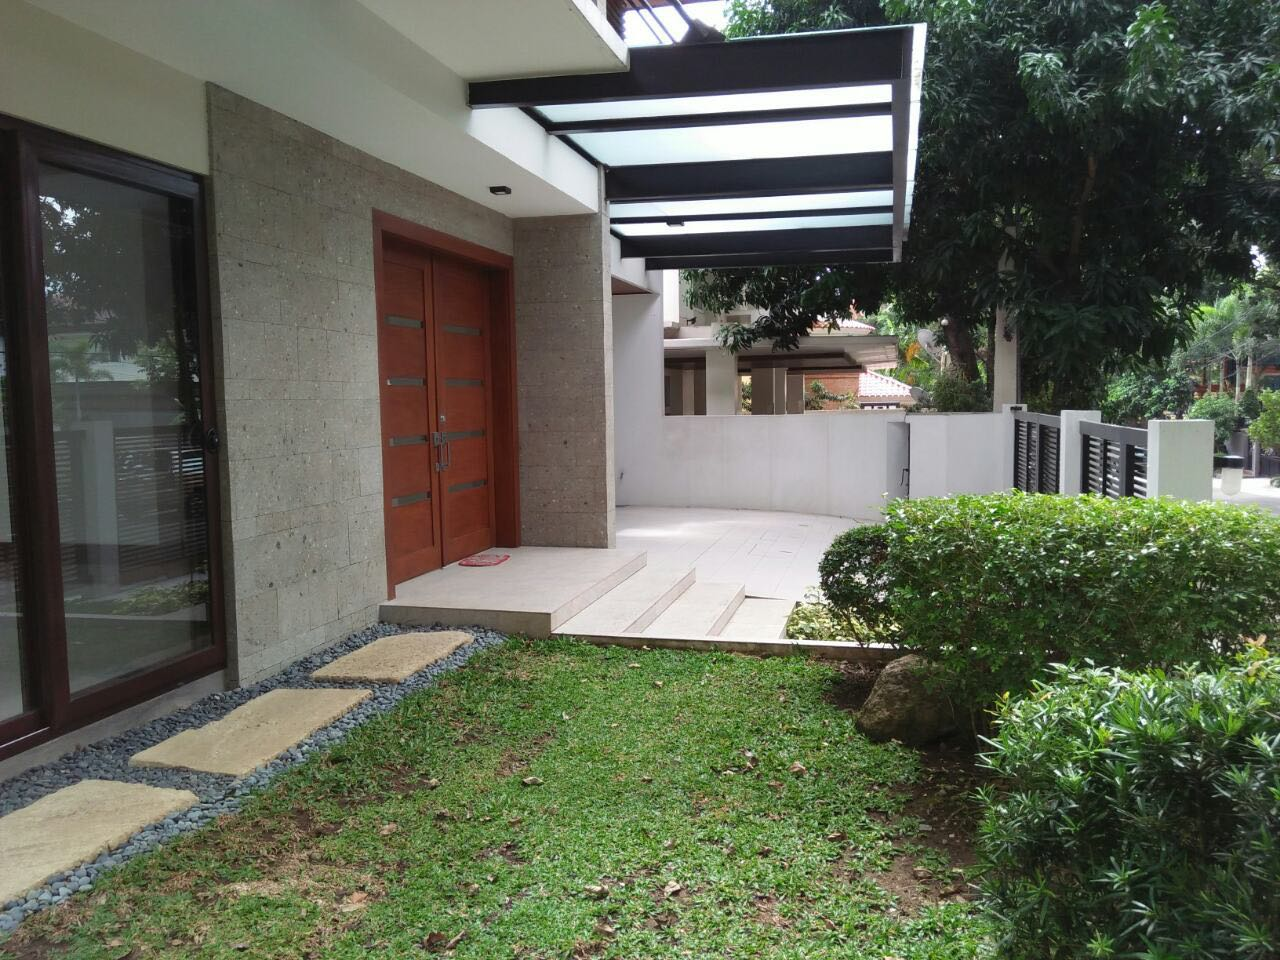 6BR House For Sale Rent, Buckingham St., Hillsborough Alabang Village, Muntinlupa City Door